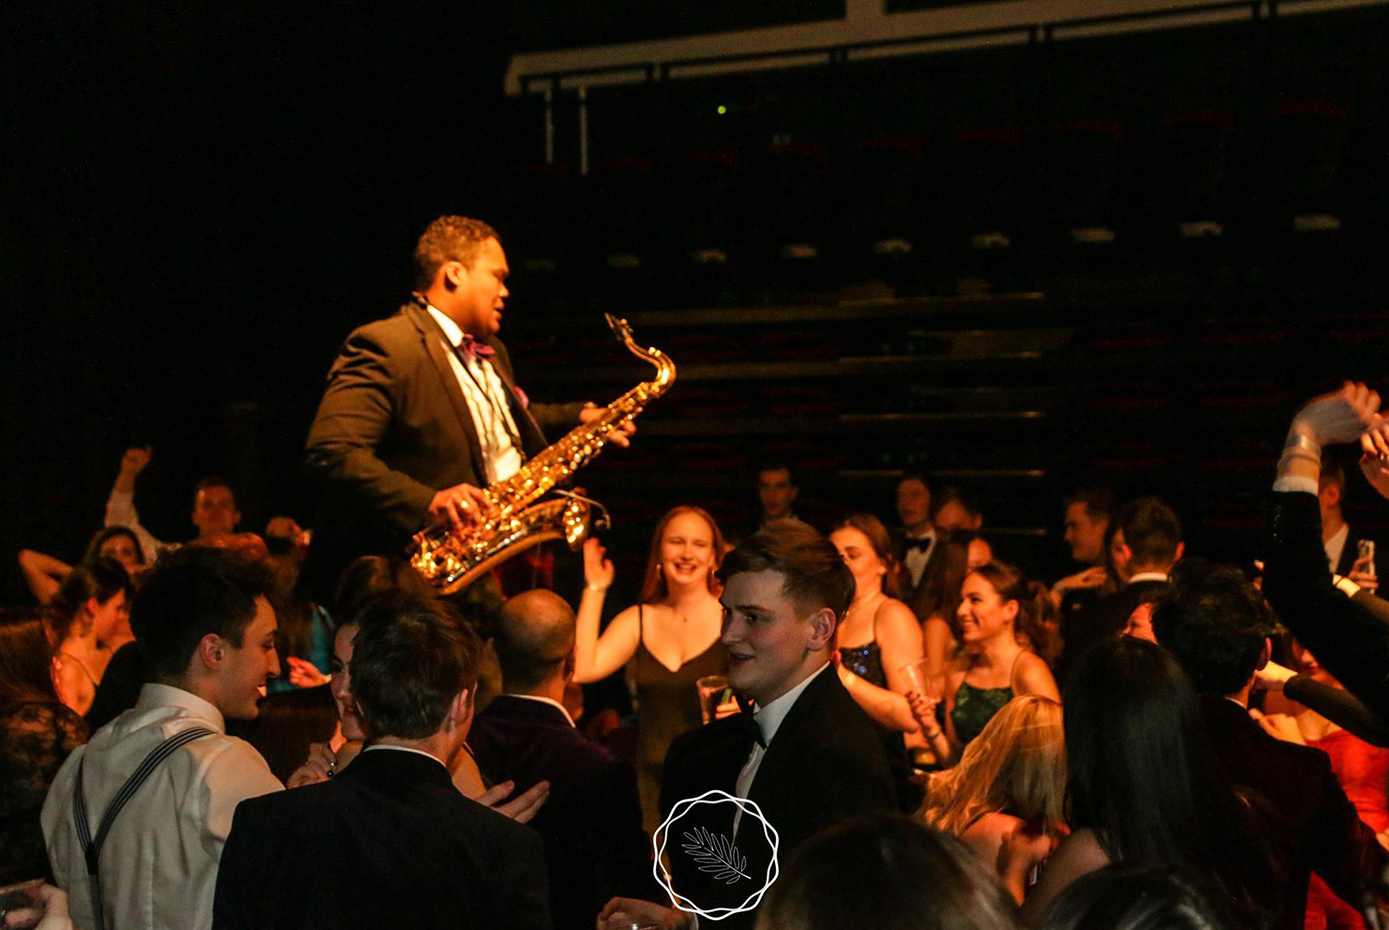 Saxaphone player in tuxedo on catwalk